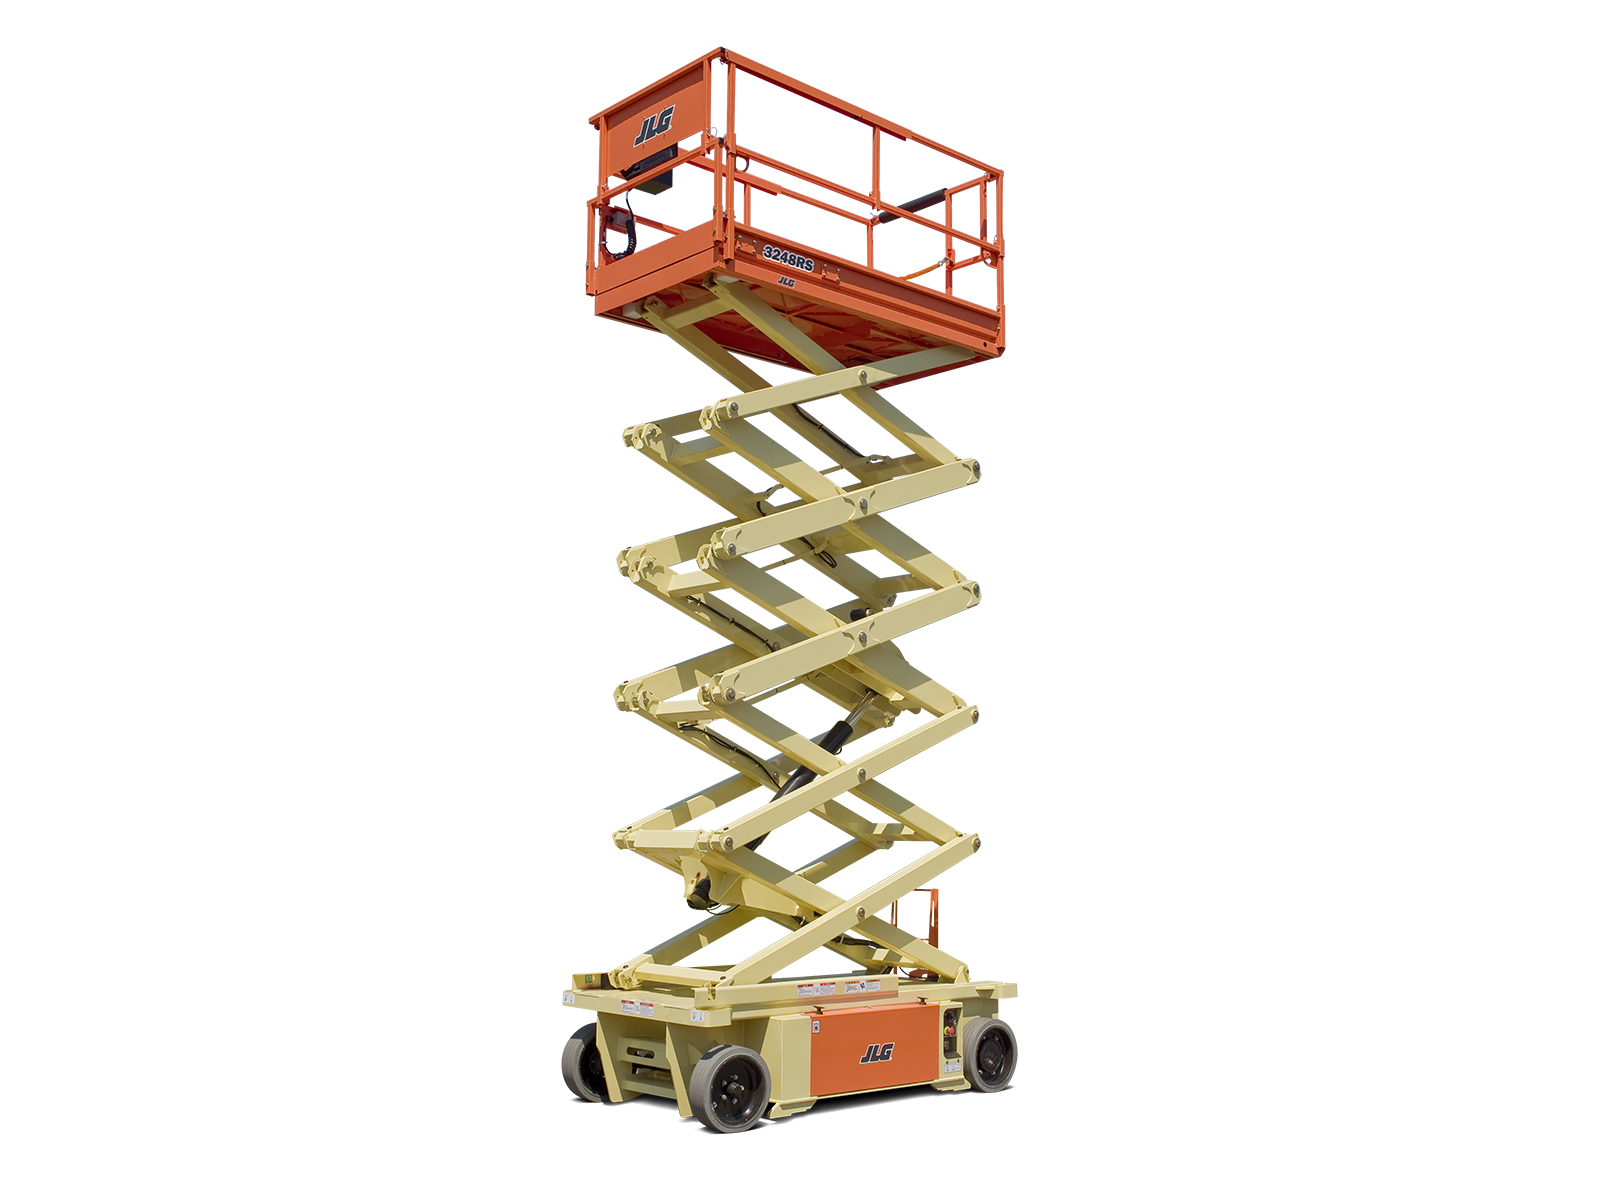 JLG Electric Scissor Lift 3248RS